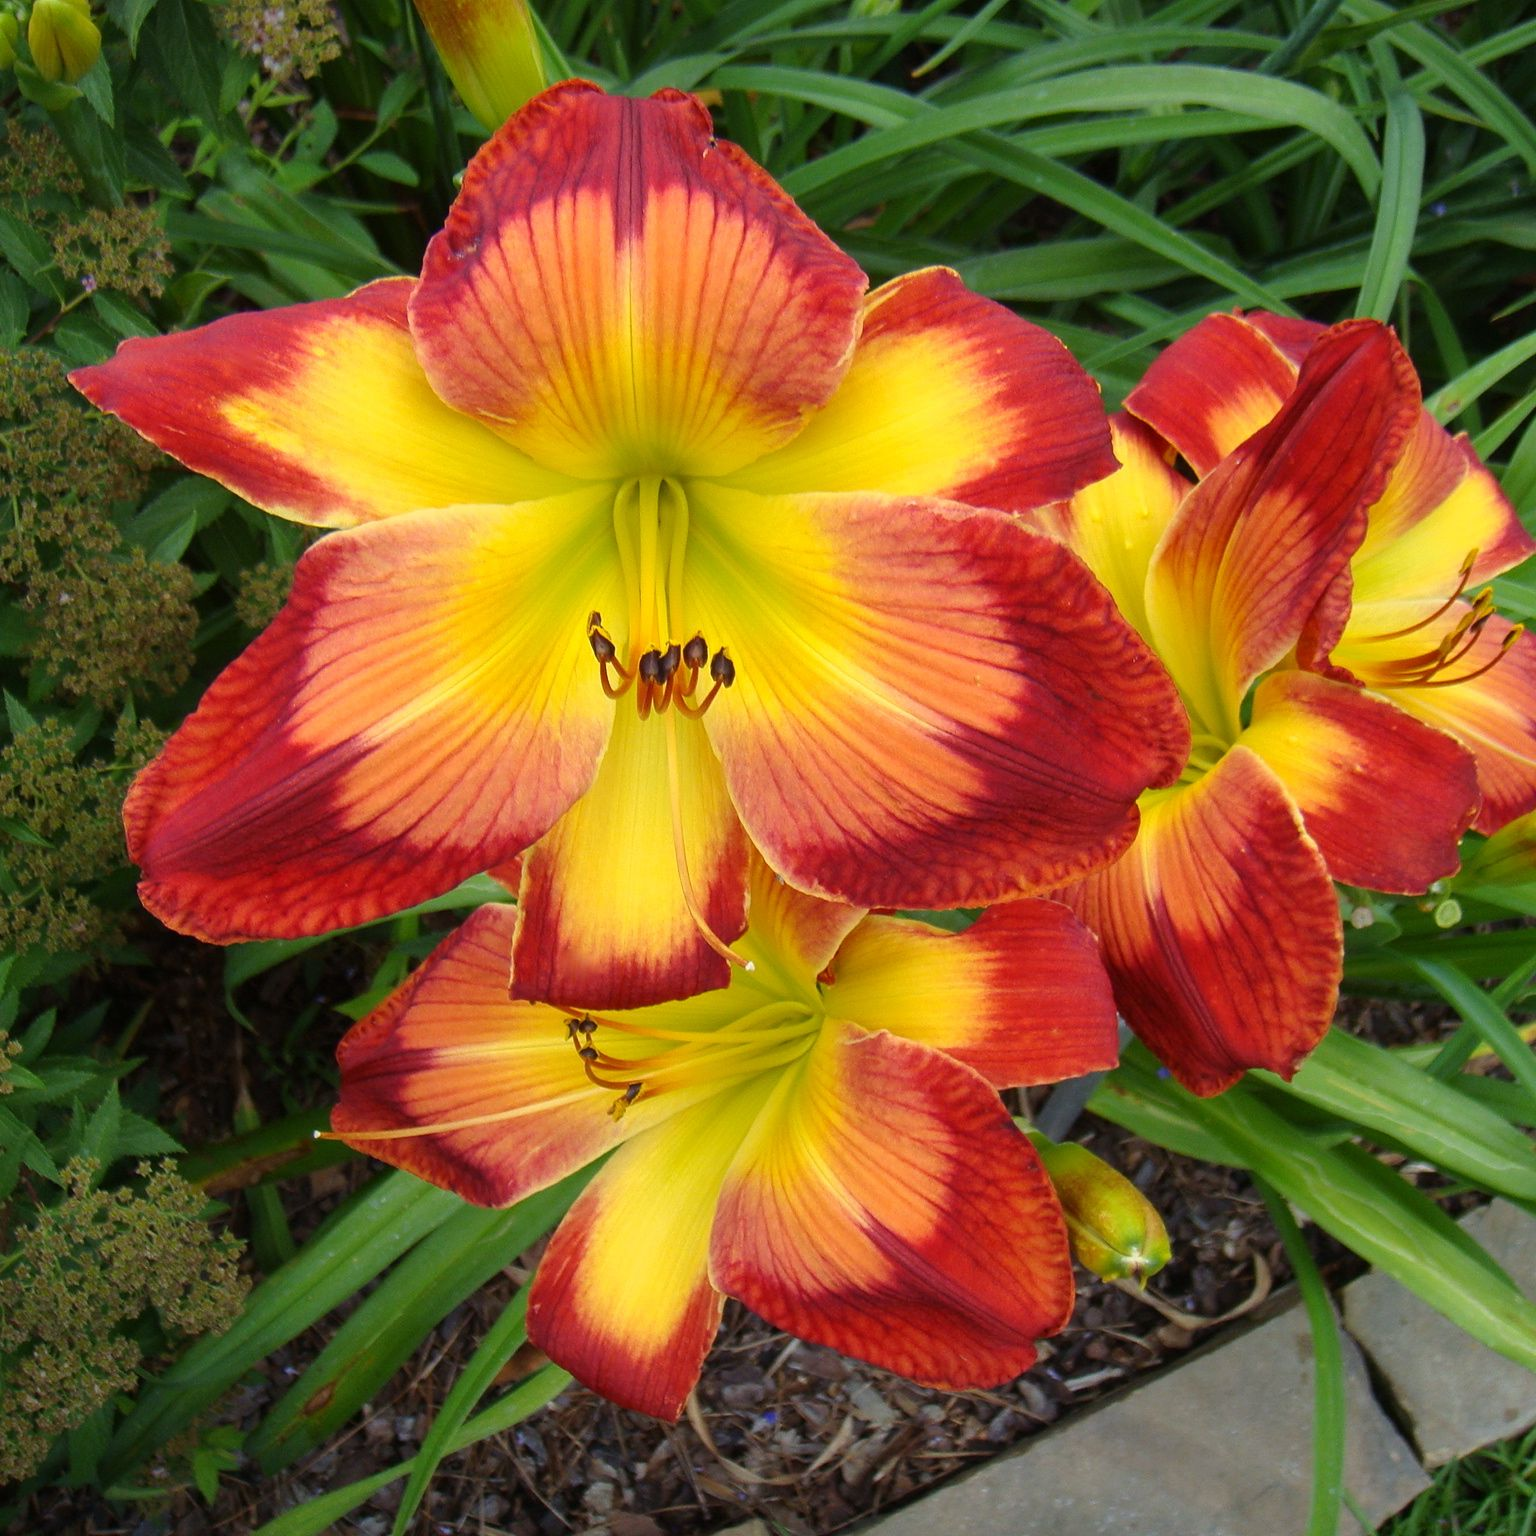 WISPY RAYS - DAYLILY. Always popular both in the display and sales garden. Limited supply this year. When it starts blooming it quickly sells out. A very distinctive daylily from a famous GA hybridizer. #daylily